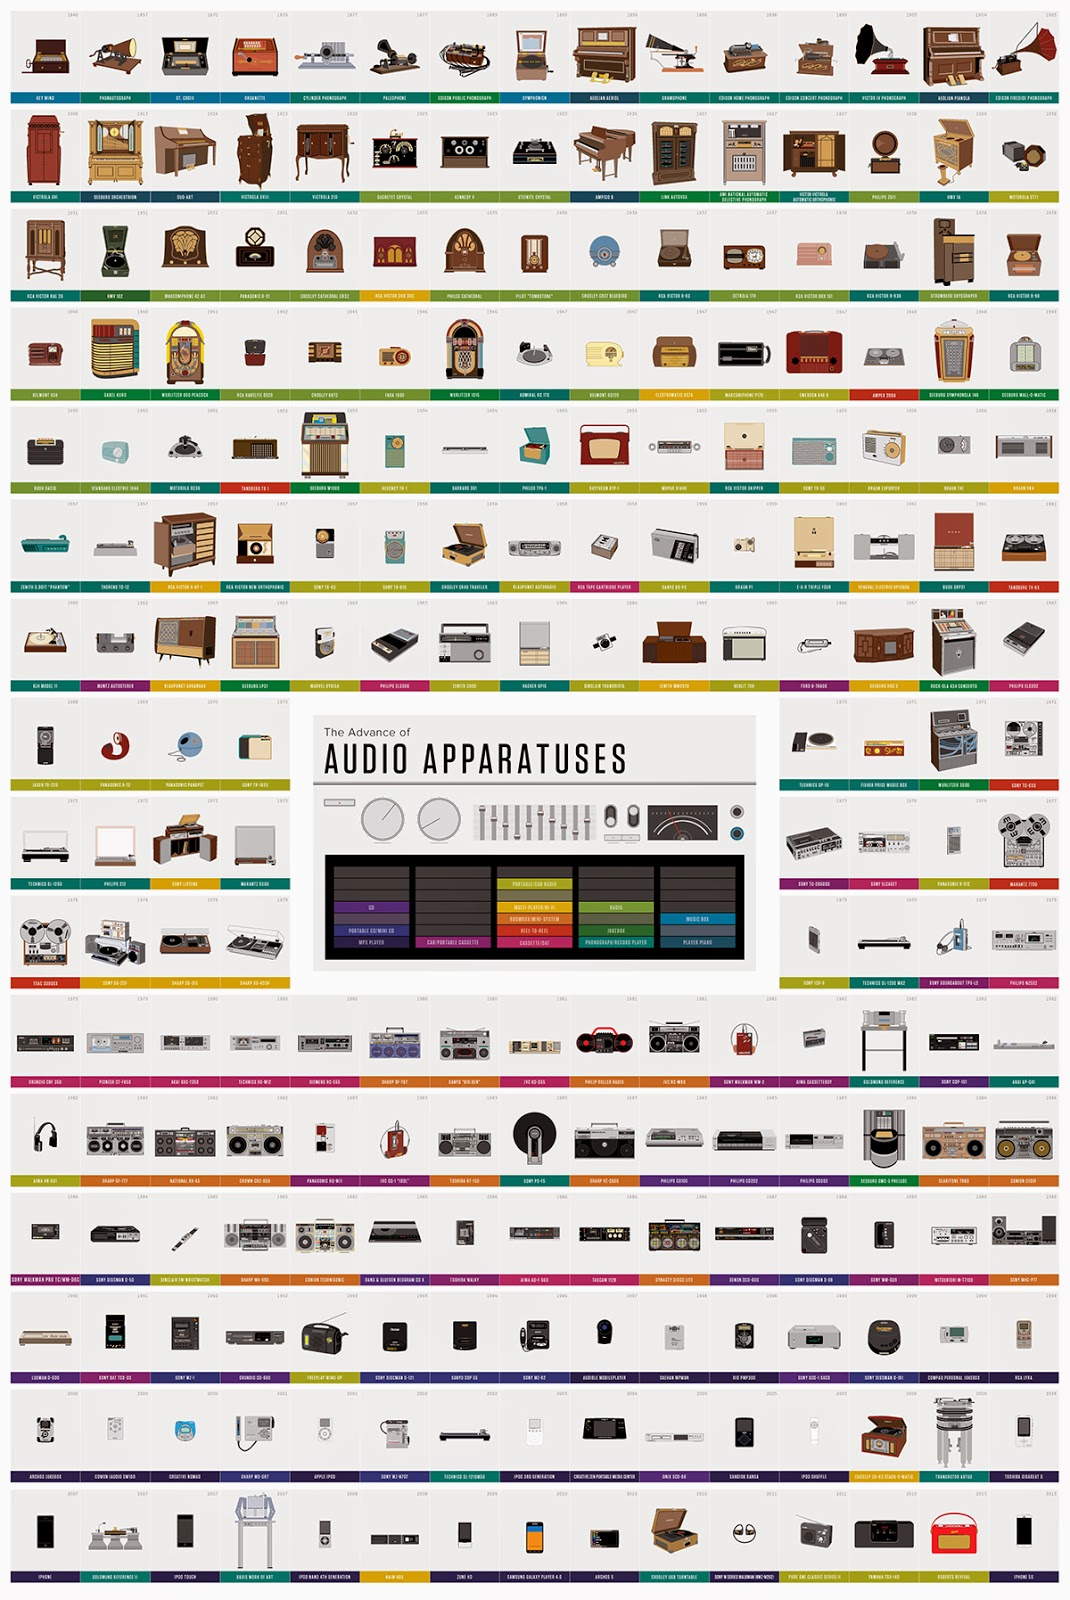 http://www.fastcodesign.com/3020964/infographic-of-the-day/infographic-the-history-of-audio-equipment?partner=rss&utm_source=feedburner&utm_medium=feed&utm_campaign=Feed%3A+fastcompany%2Fheadlines+%28Fast+Company%29